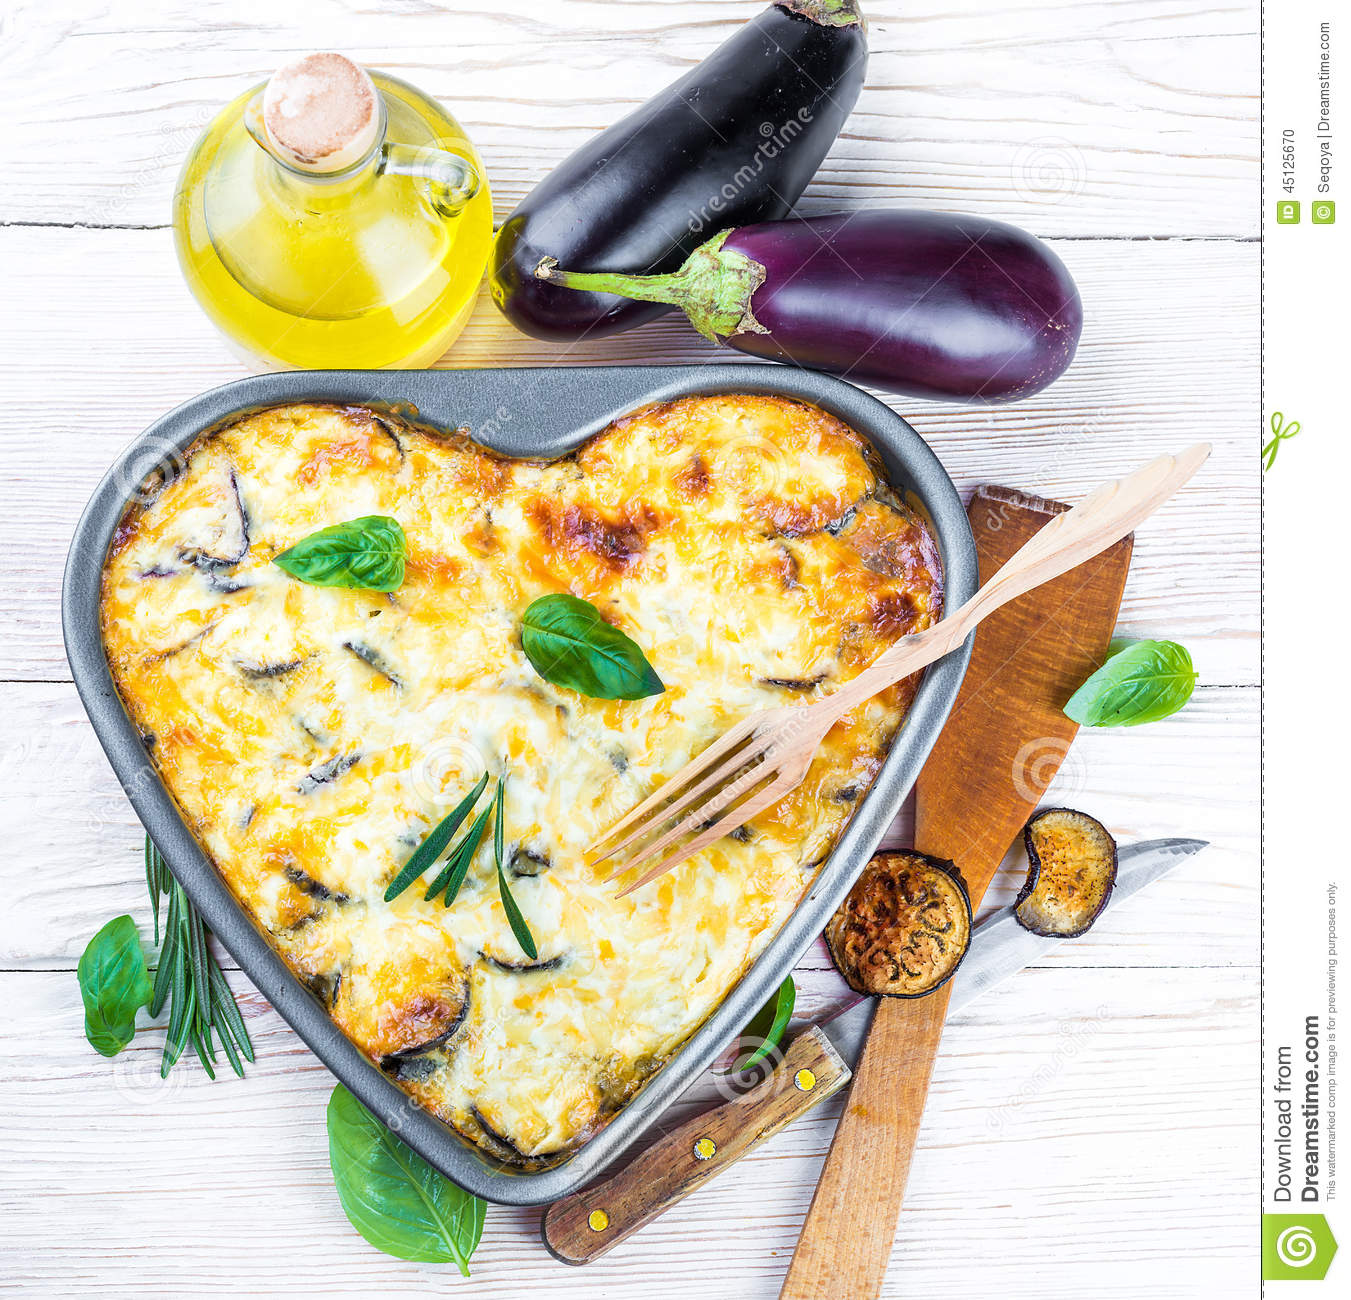 Greek Moussaka of eggplant